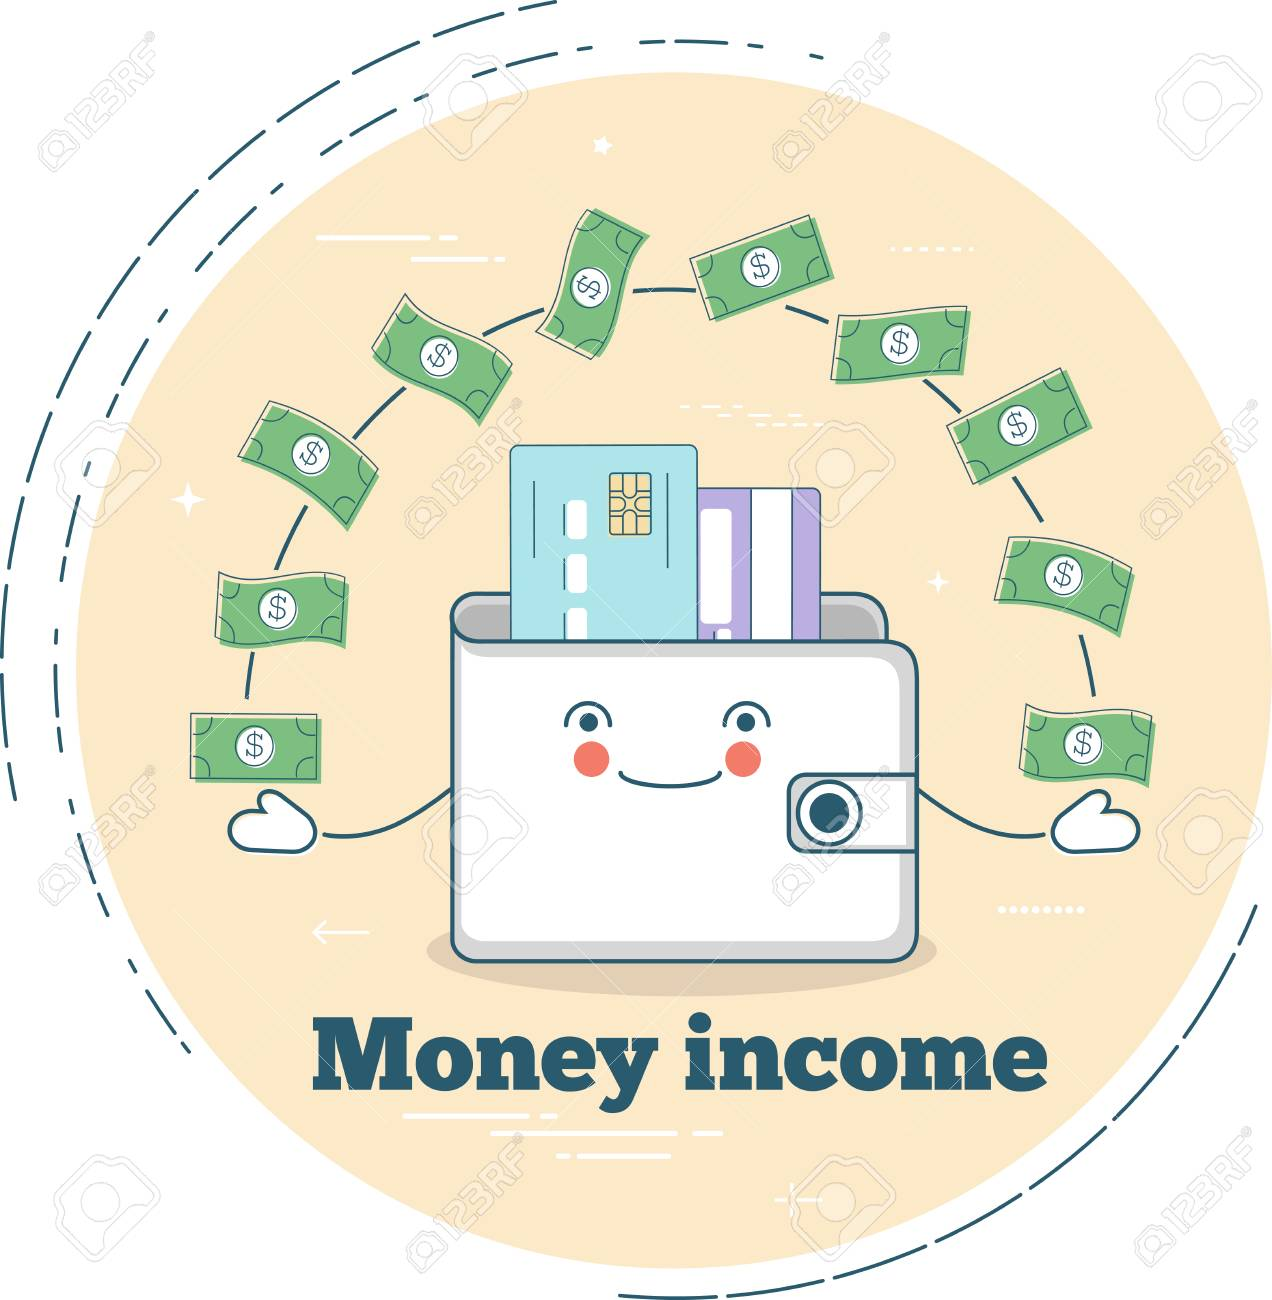 Money income trendy concept in line art style  Banking and finance,